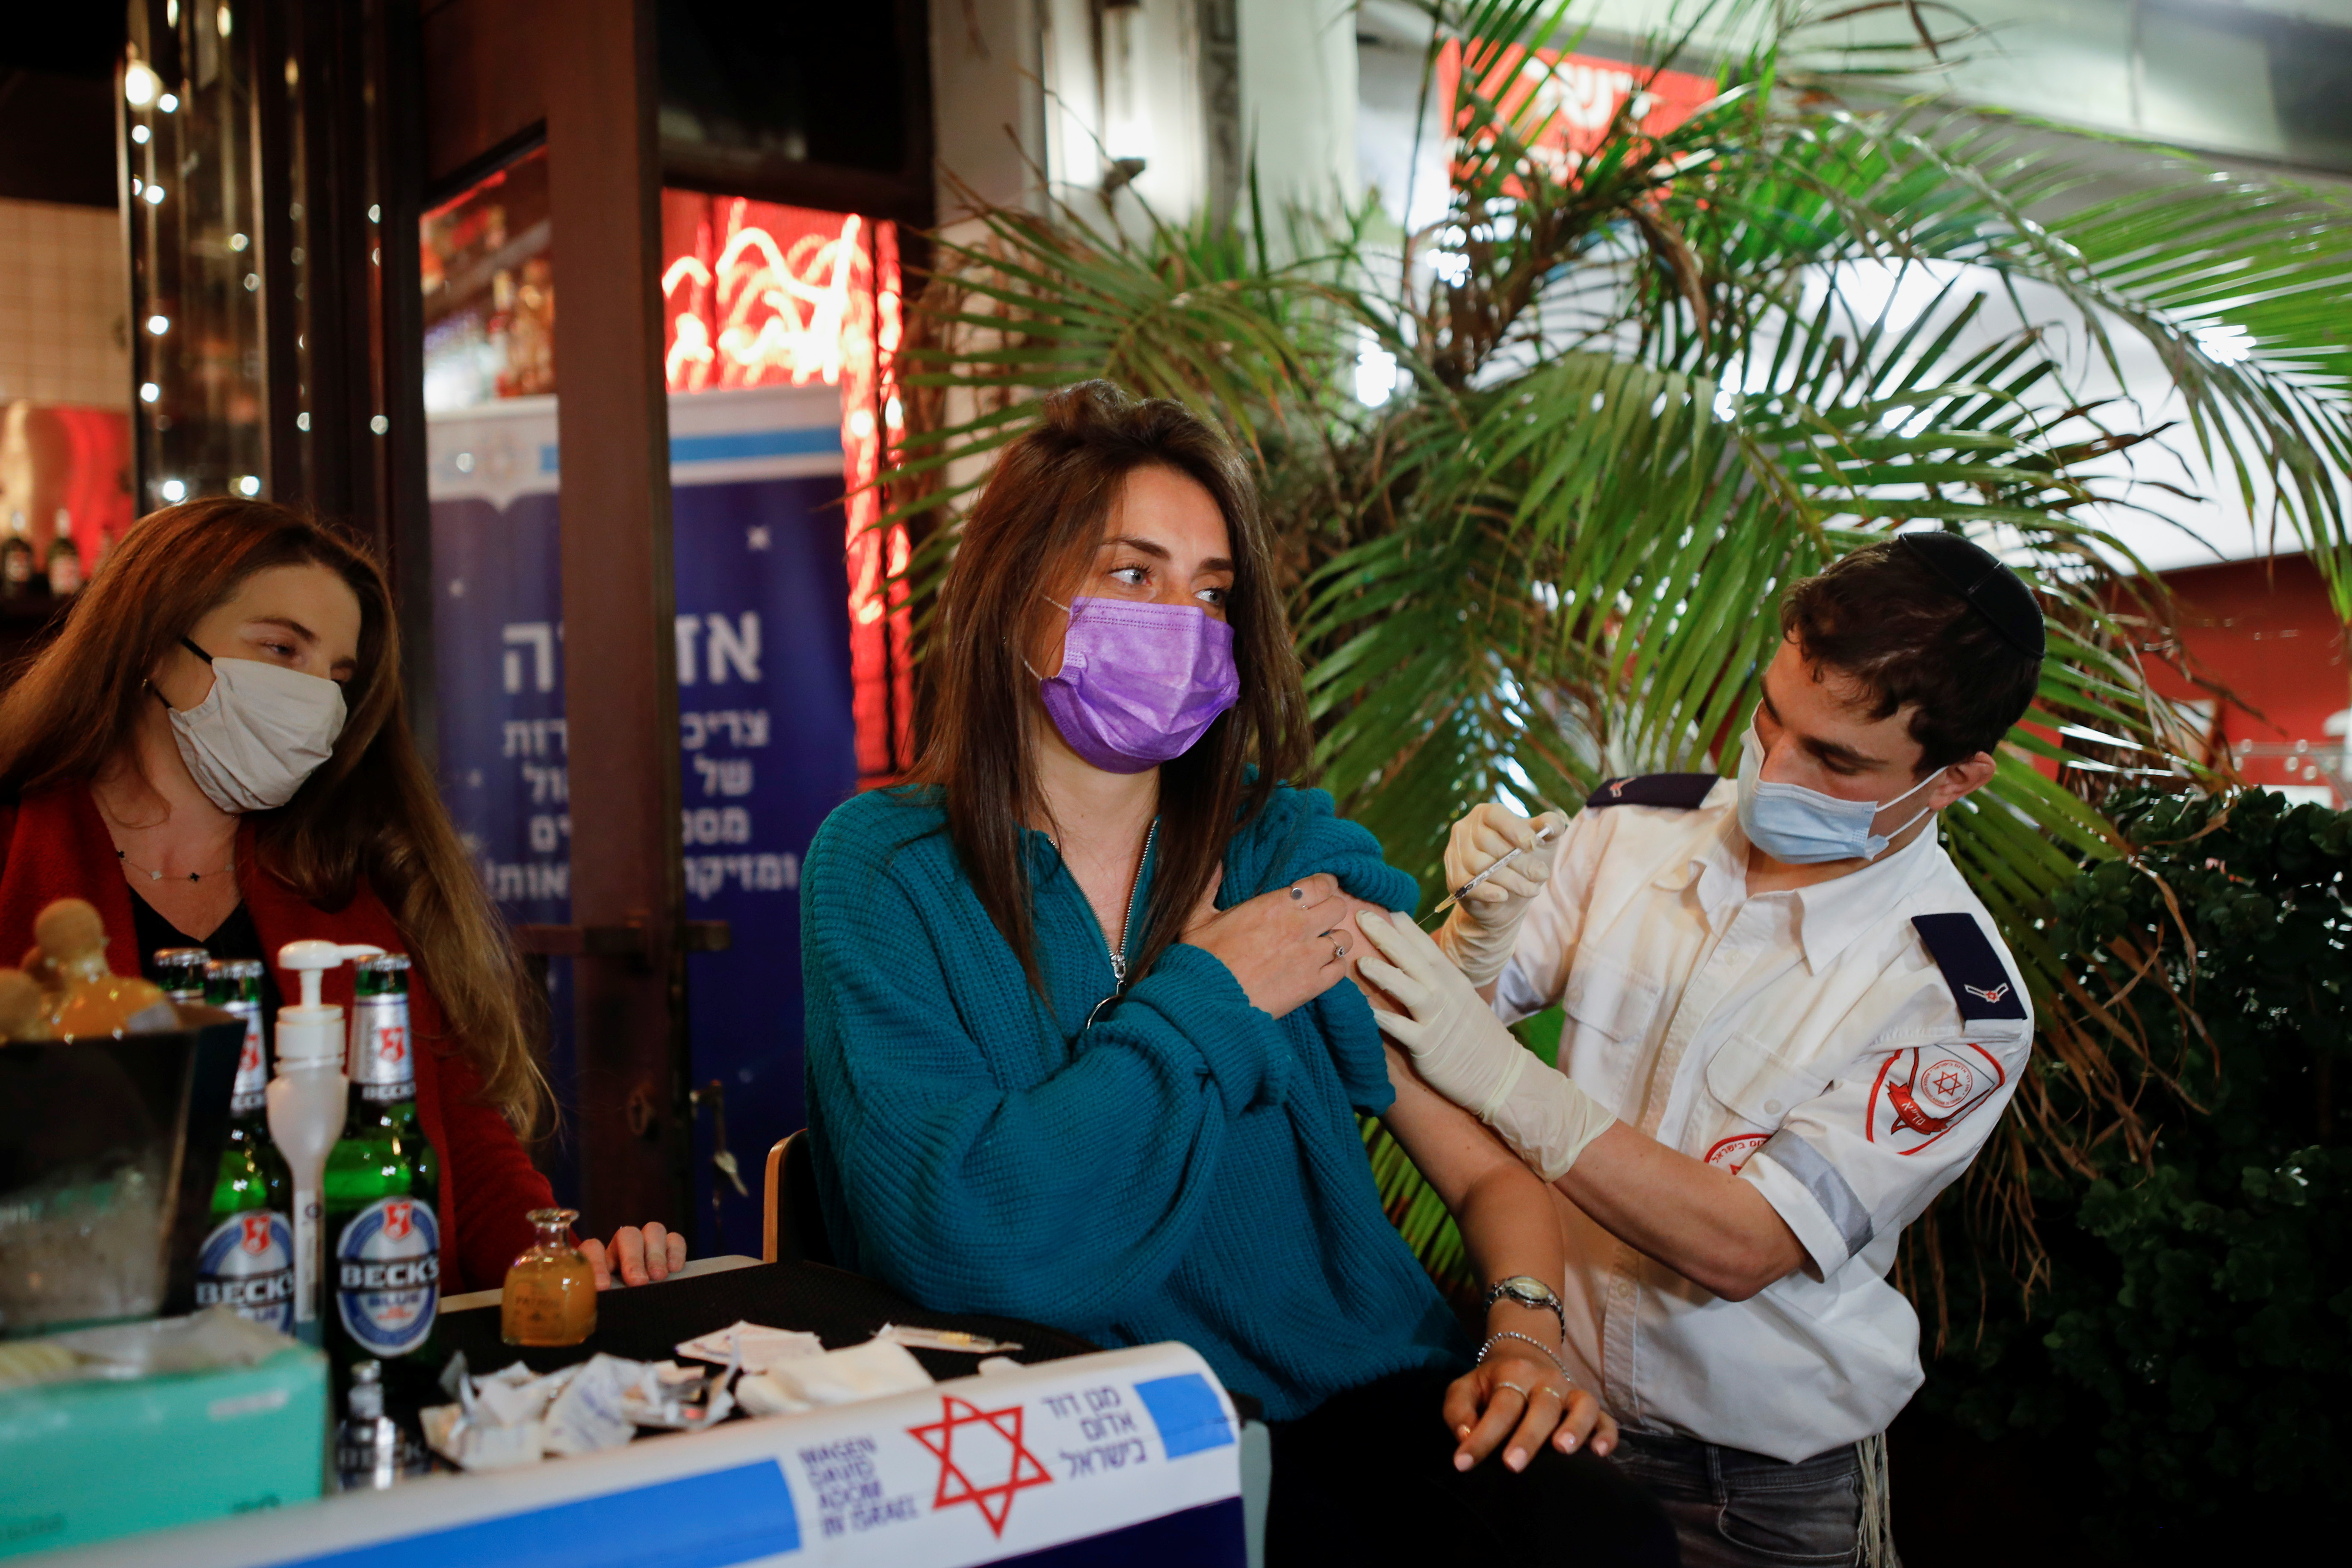 A woman receives a vaccination against the coronavirus disease (COVID-19) as part of a Tel Aviv municipality initiative offering a free drink at a bar to residents getting the shot, in Tel Aviv, Israel February 18, 2021. REUTERS/Corinna Kern - RC26VL9AZFSZ